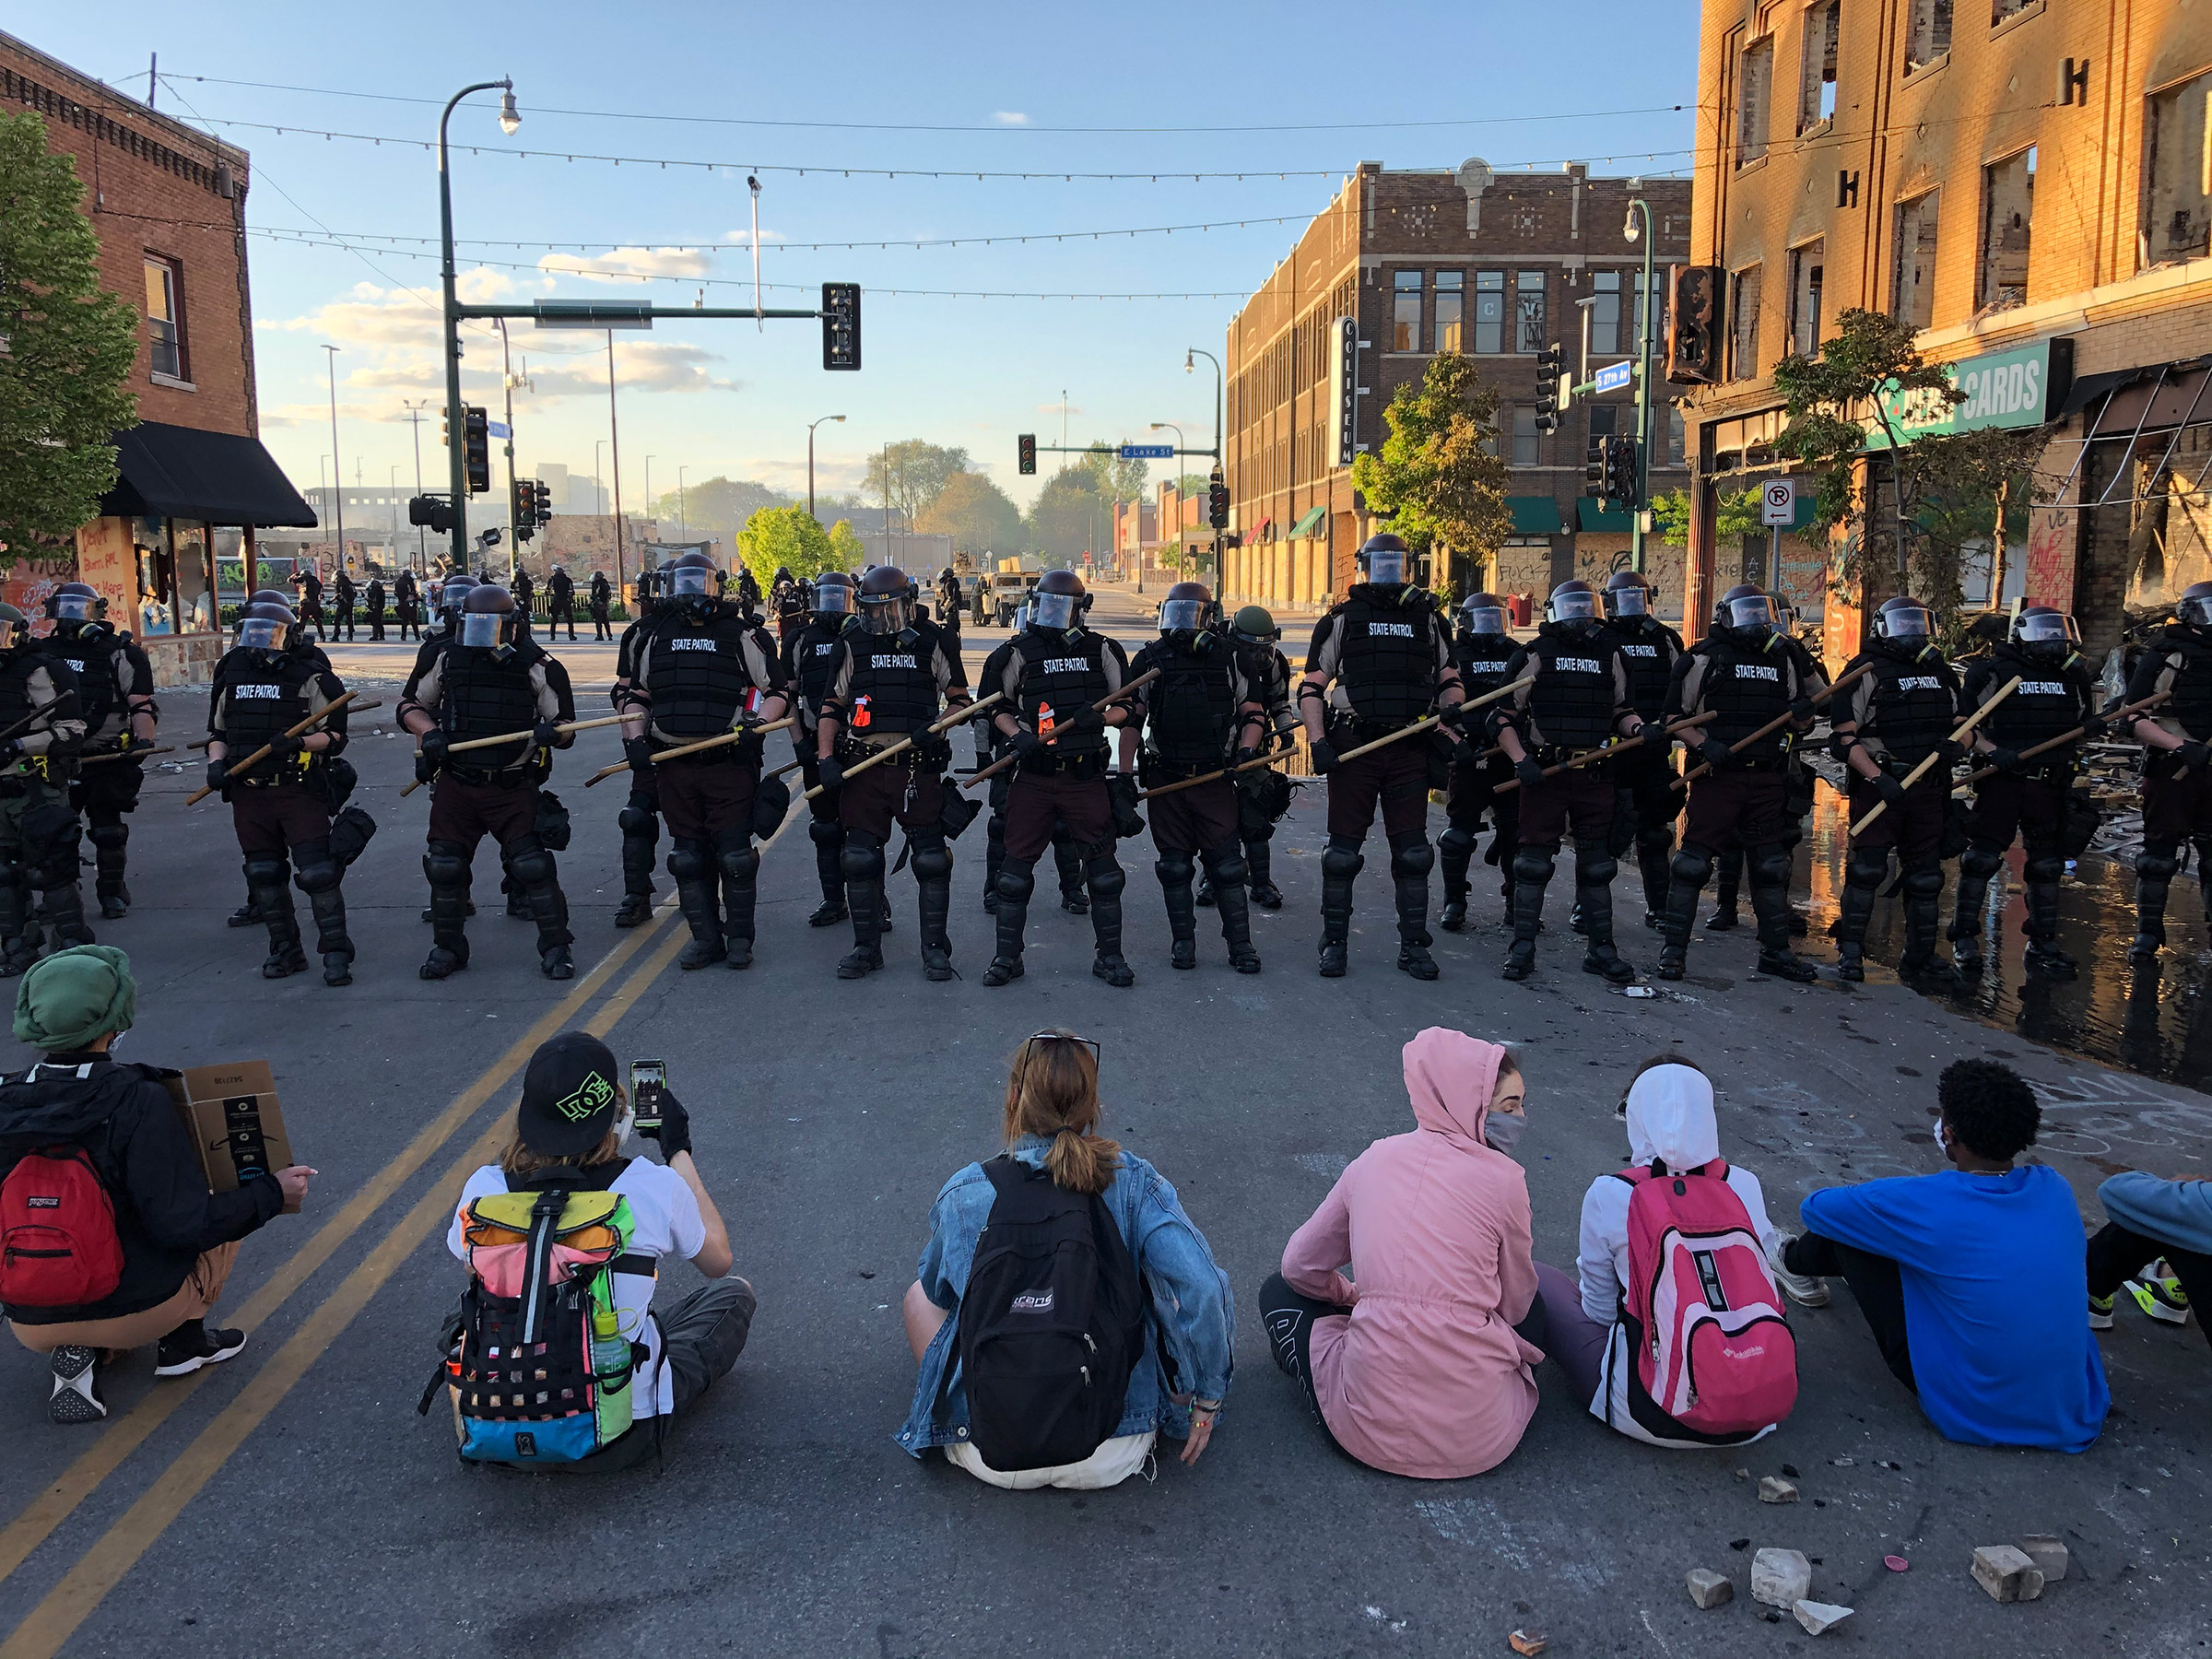 People sit on the street in front of a row of police officers during a rally in Minneapolis on May 29 after the death of George Floyd.